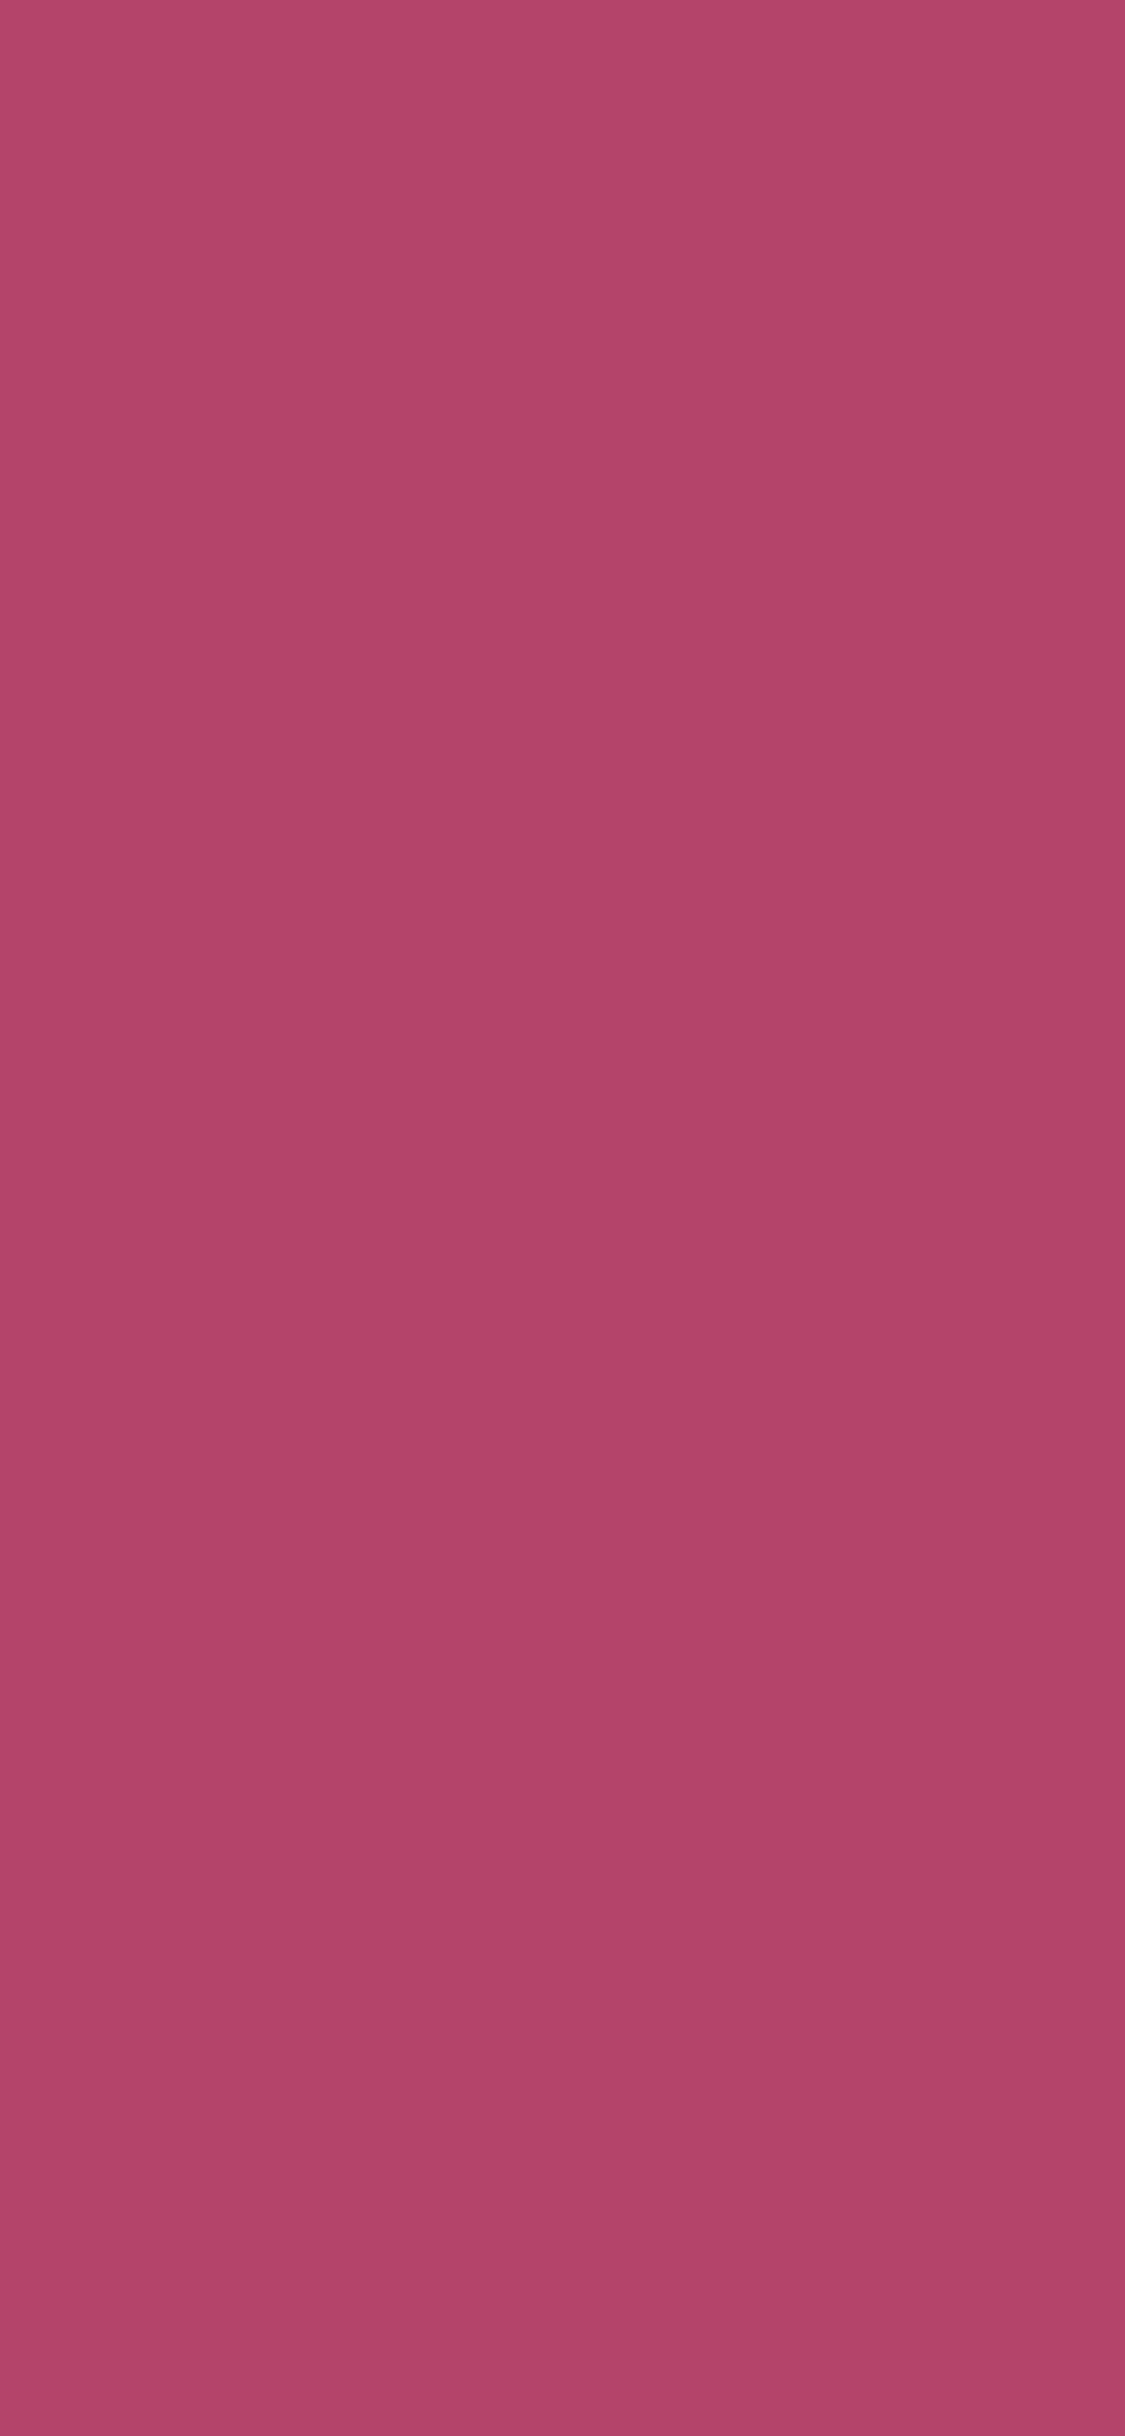 1125x2436 Raspberry Rose Solid Color Background